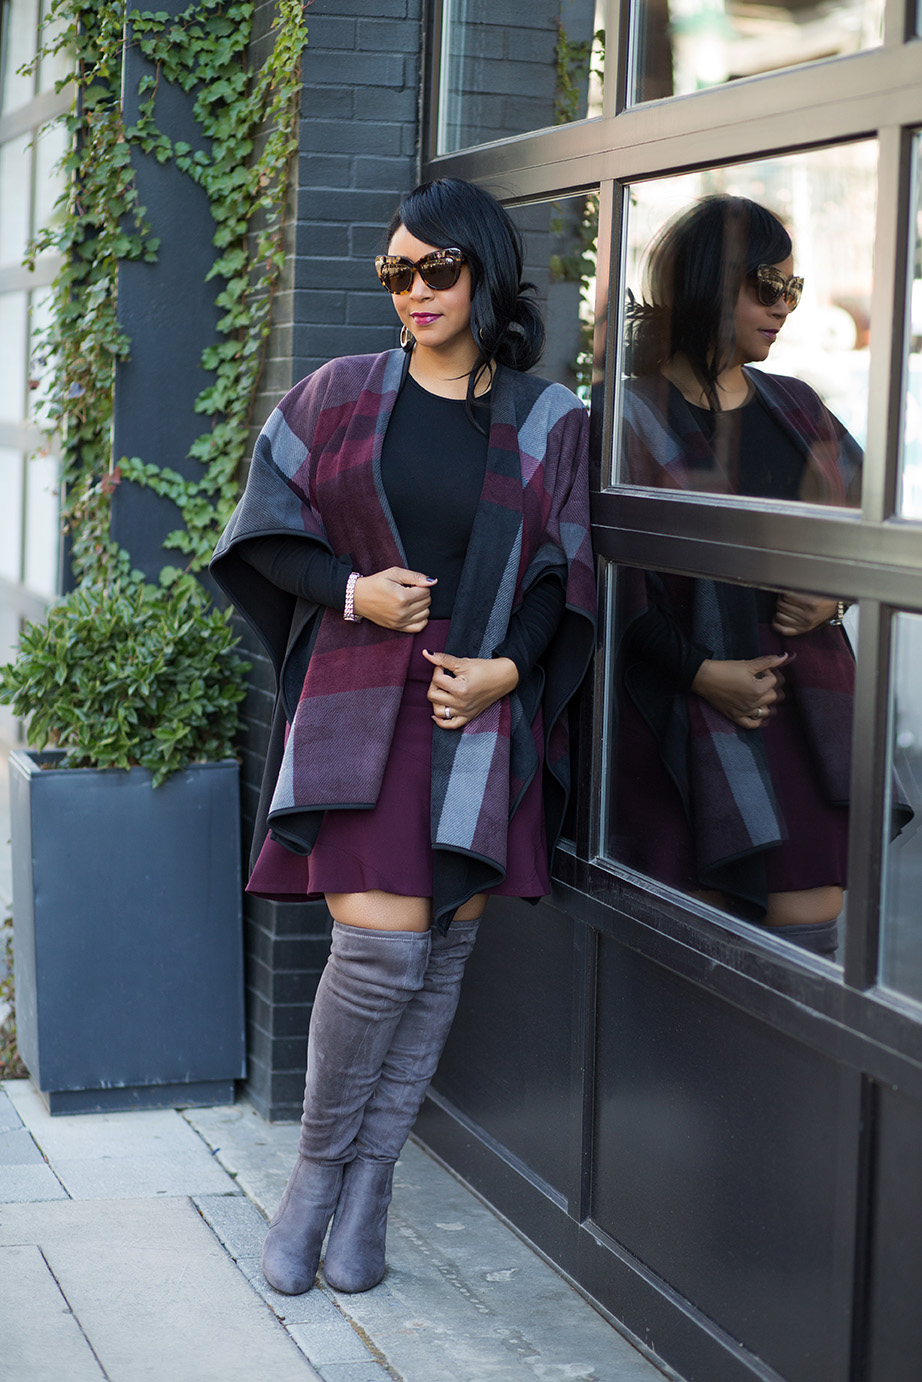 A case for Cold Weather capes: Costco wool print cape, Gap Long Sleeve Crew Tee, LOFT skirt, Grey Over the Knee Boots, House of Harlow Chelsea sunglasses, outfit of the day